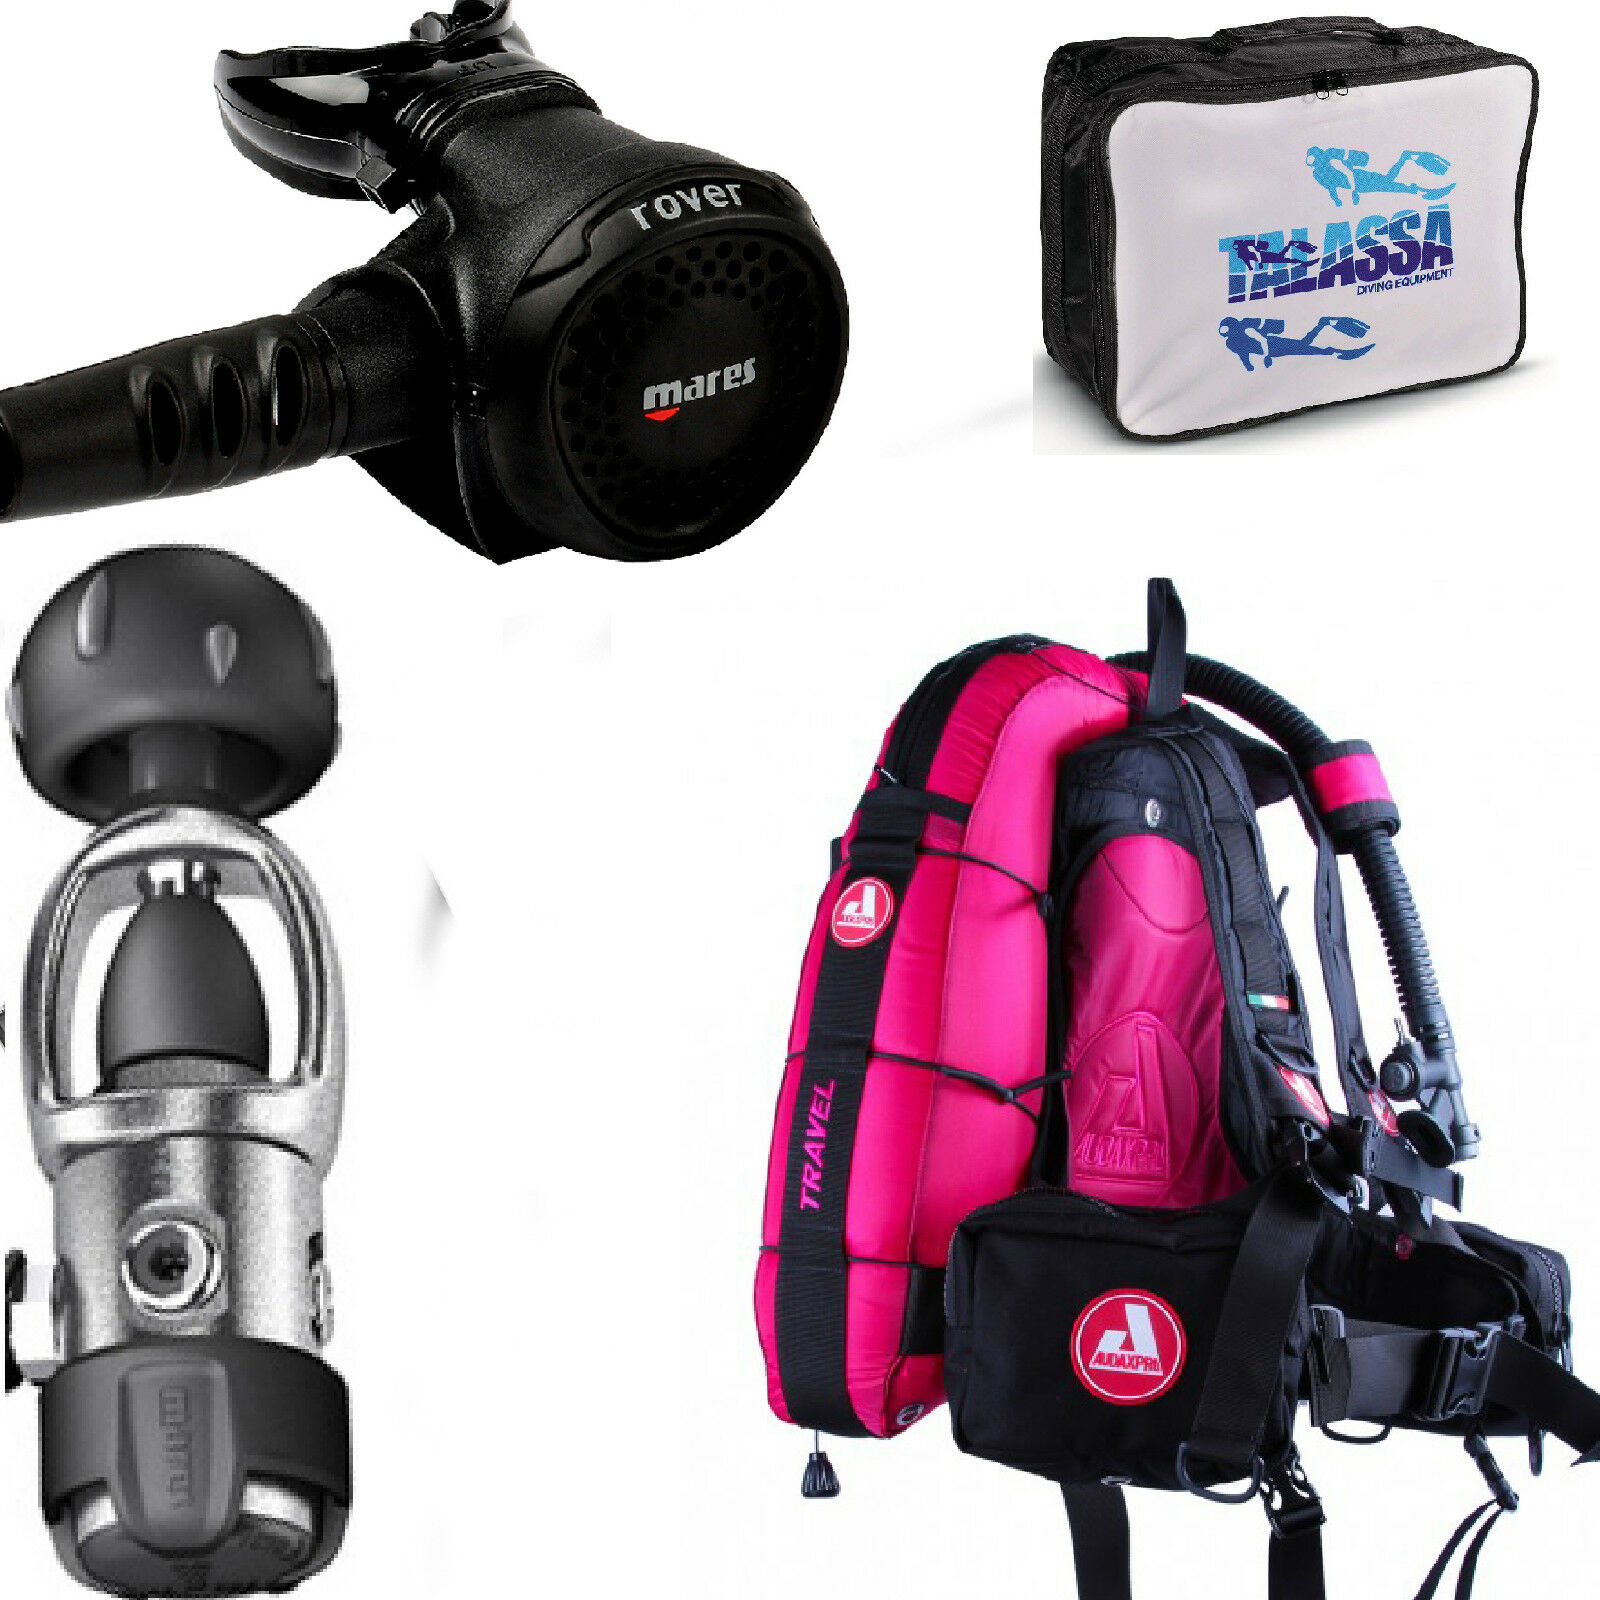 LO3 63 Mares Regulator  ROVER 2S YOKE + BCD AUDAXPRO TRAVEL  FUCSIA